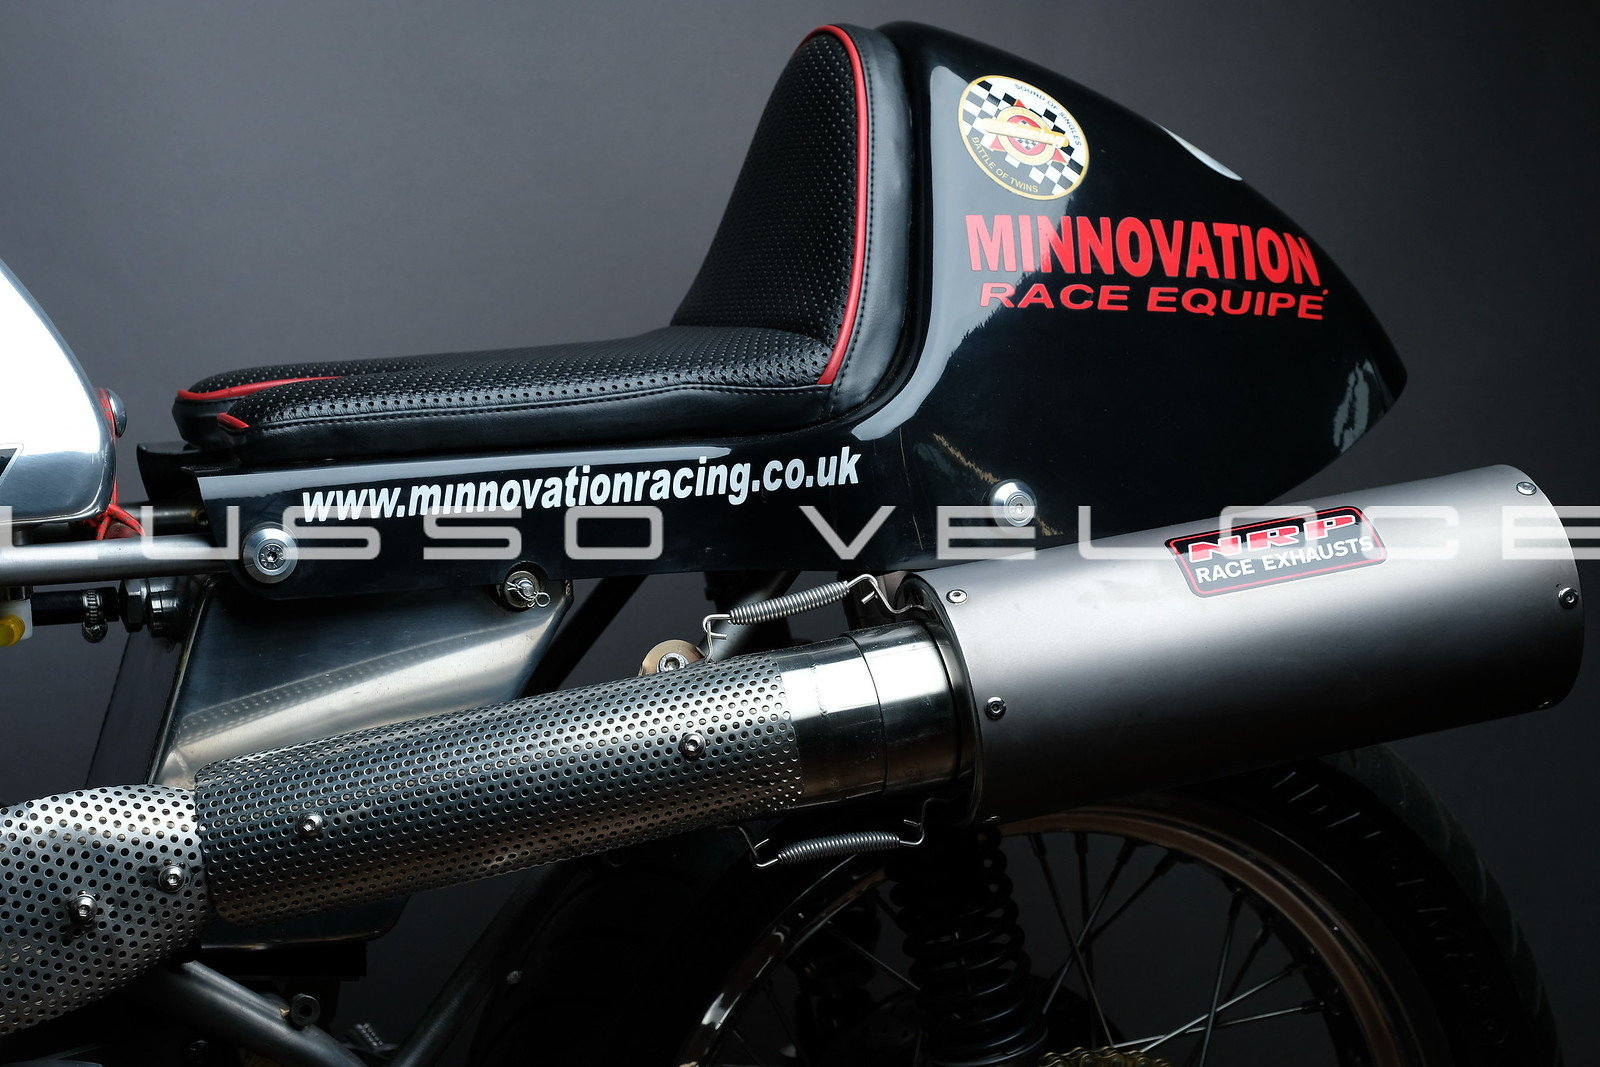 1972 Norton Seeley Commando 750 race bike For Sale (picture 3 of 20)